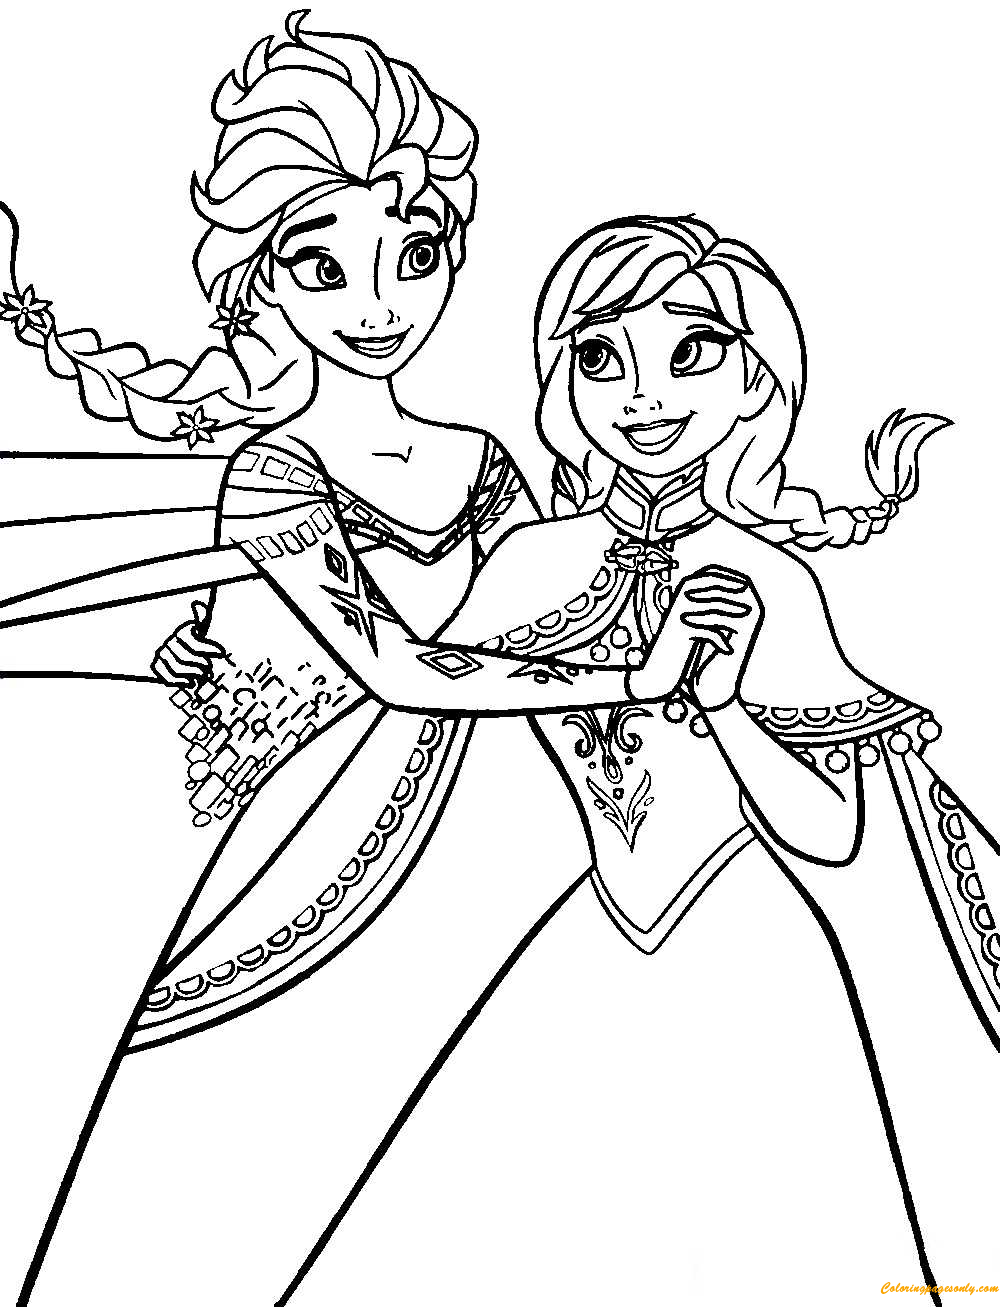 - Frozen Anna And Elsa Coloring Page - Free Coloring Pages Online